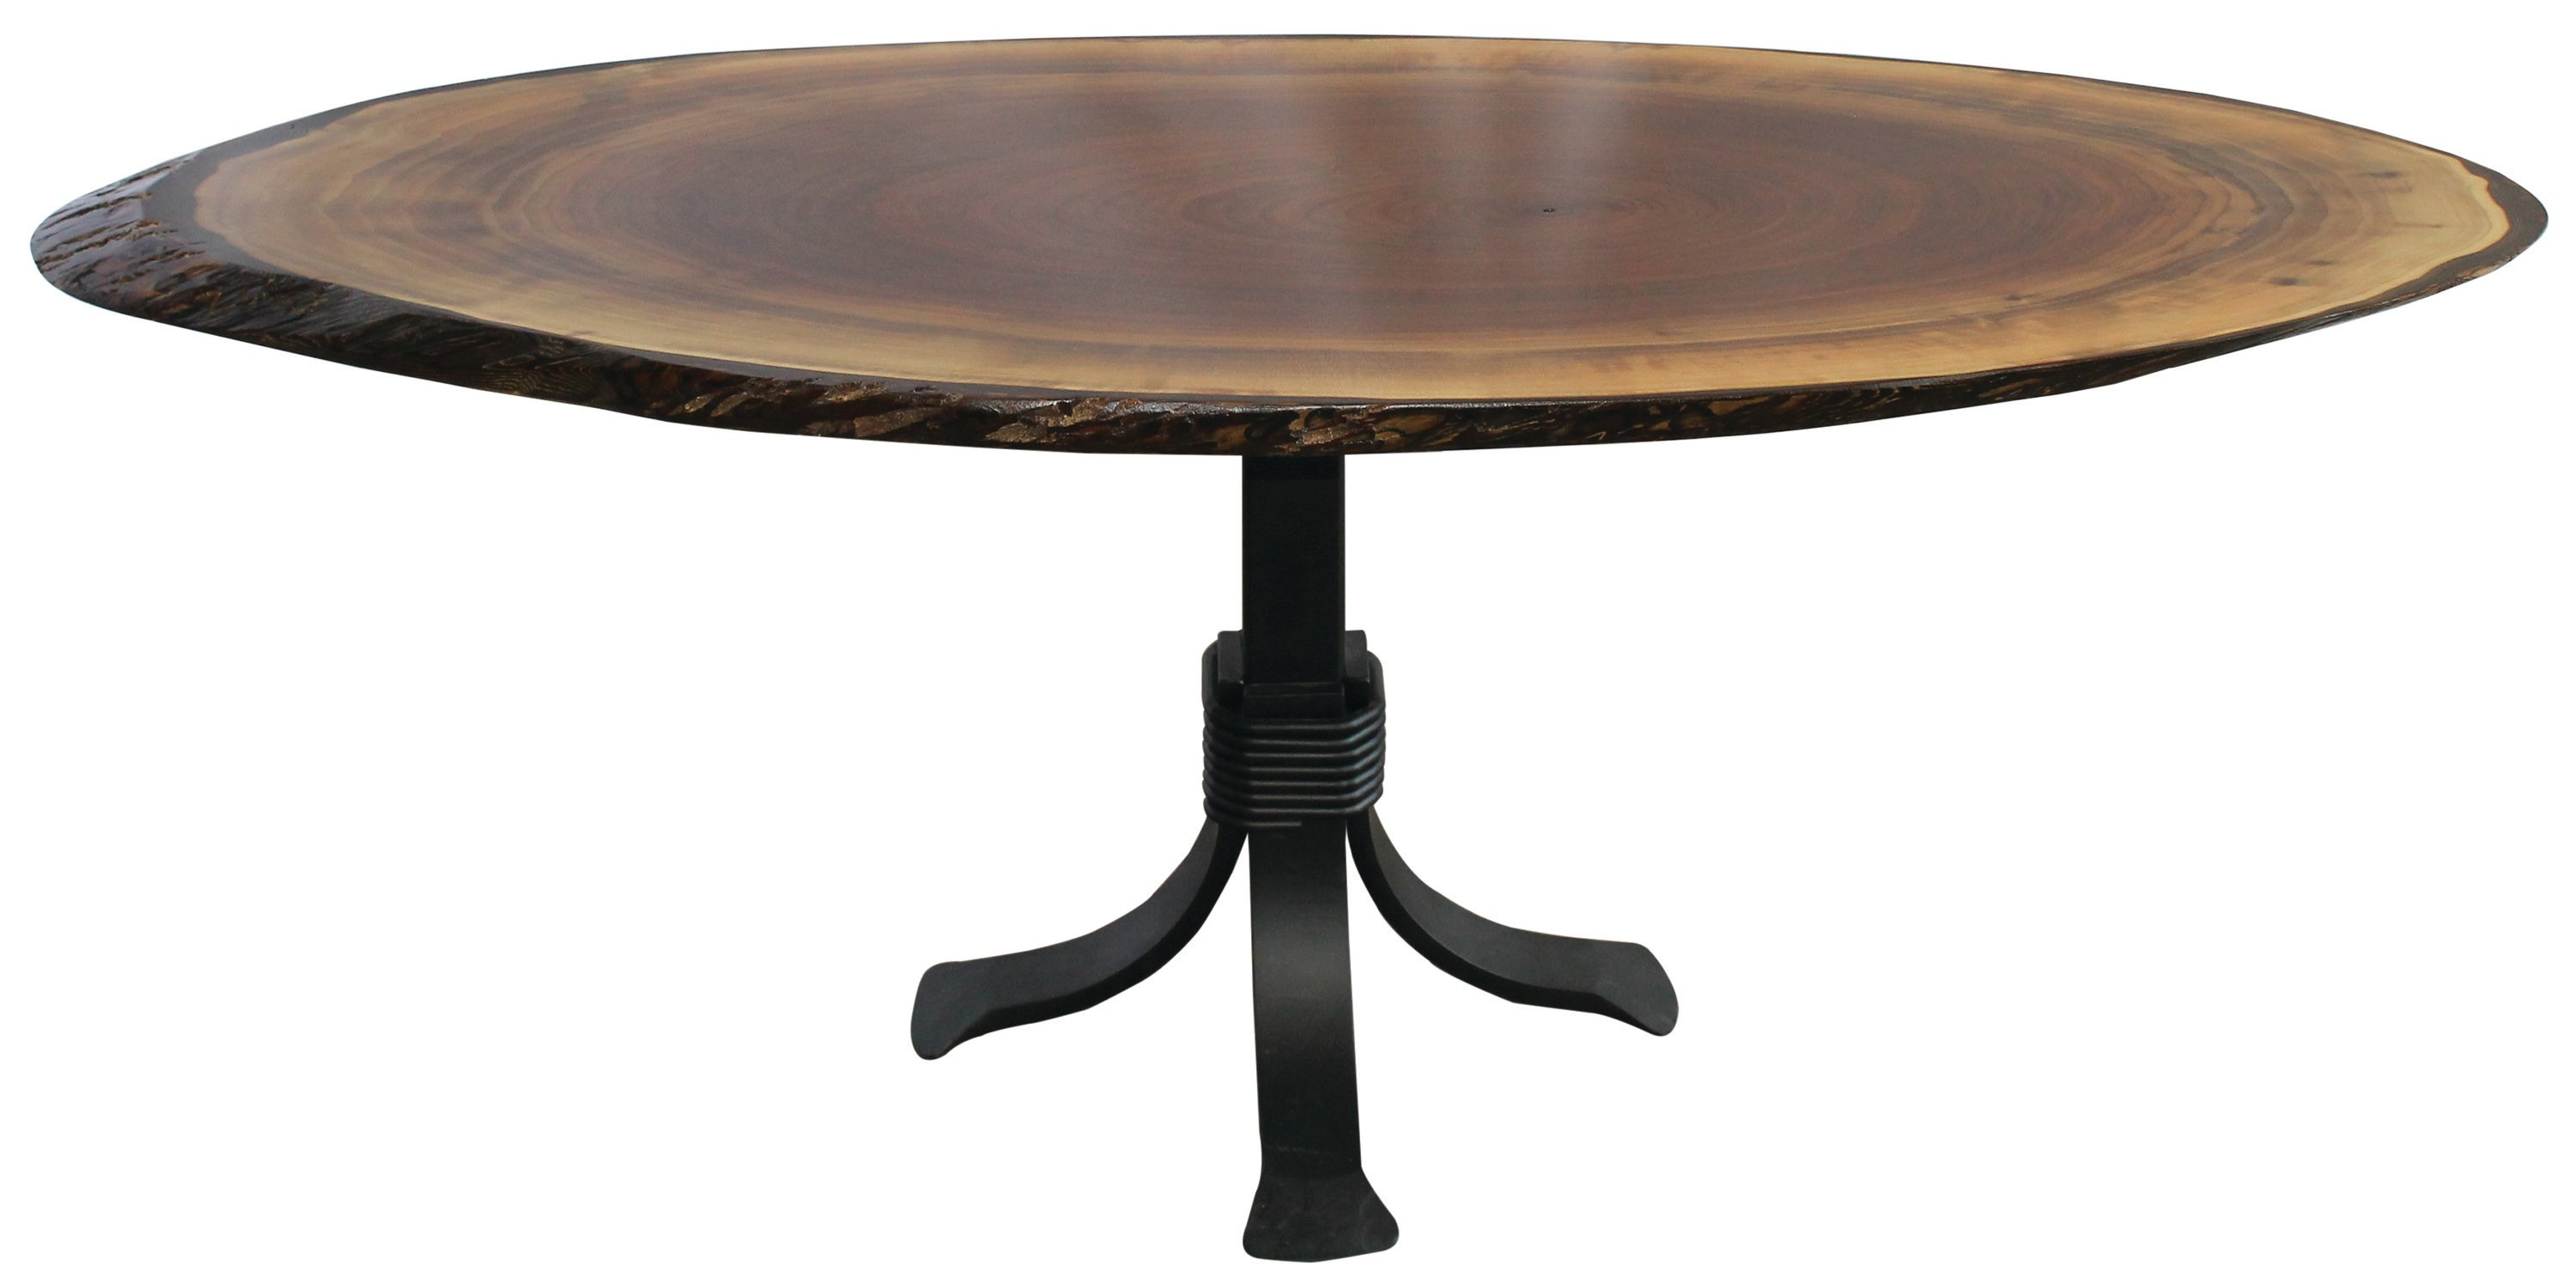 Walnut Oval Coffee Table With Pedestal Base